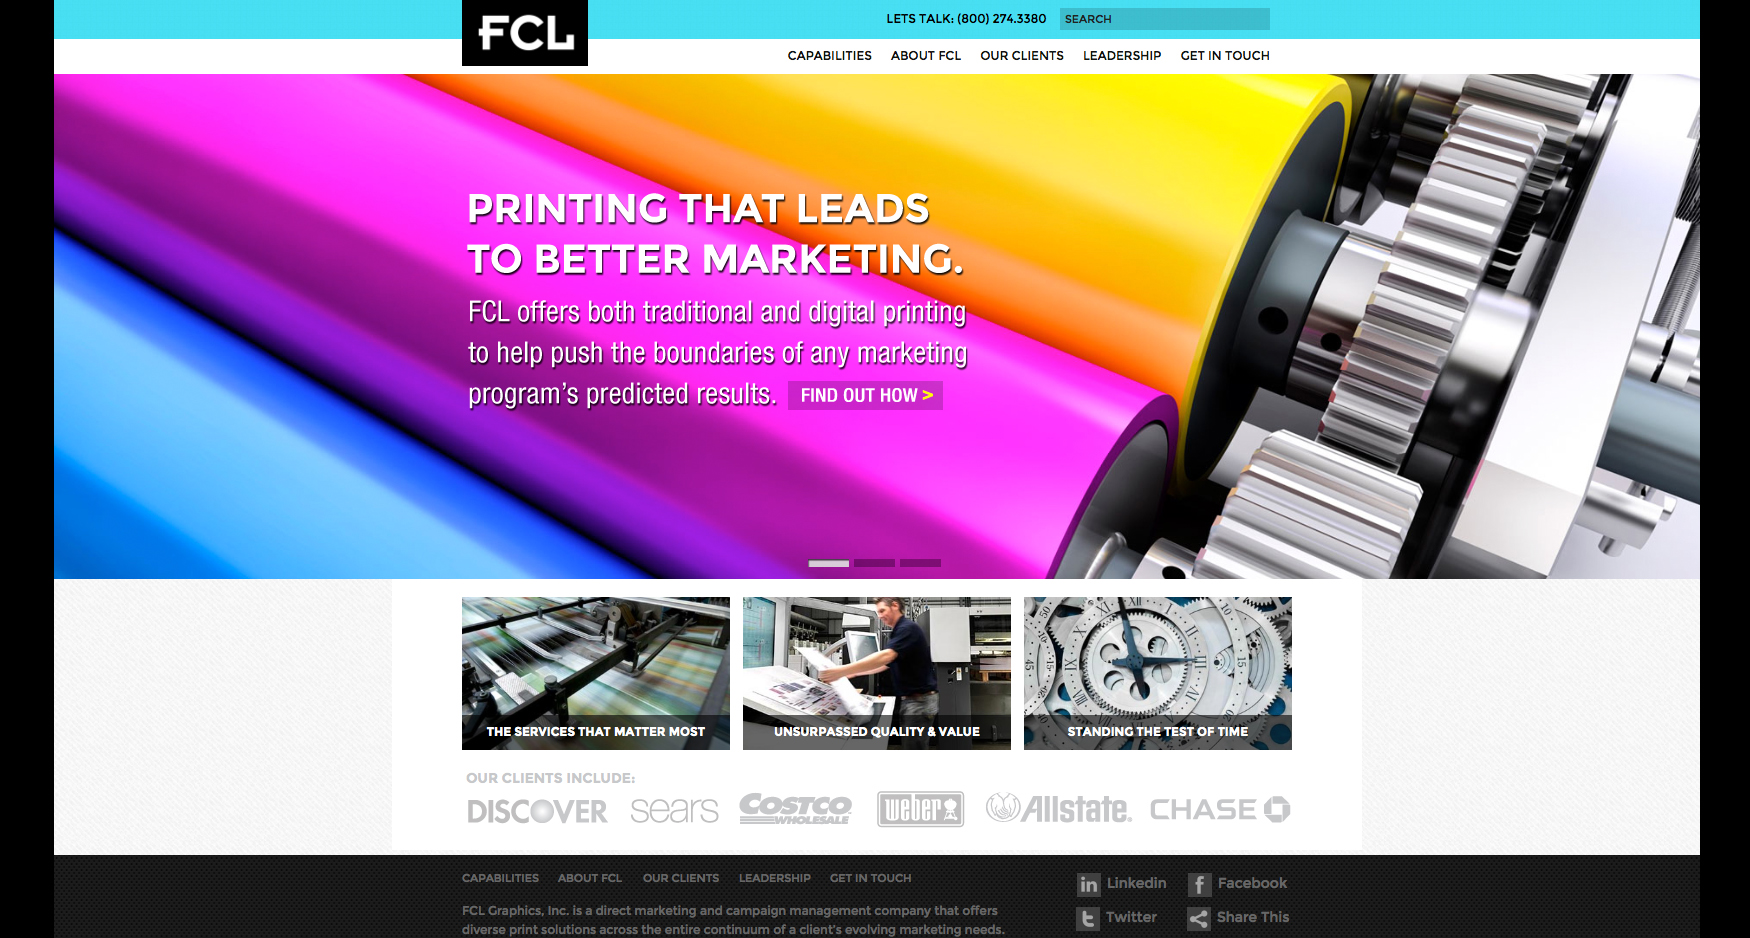 1 FCL Homepage 1 - FCL GRAPHICS - CORPORATE WEBSITE